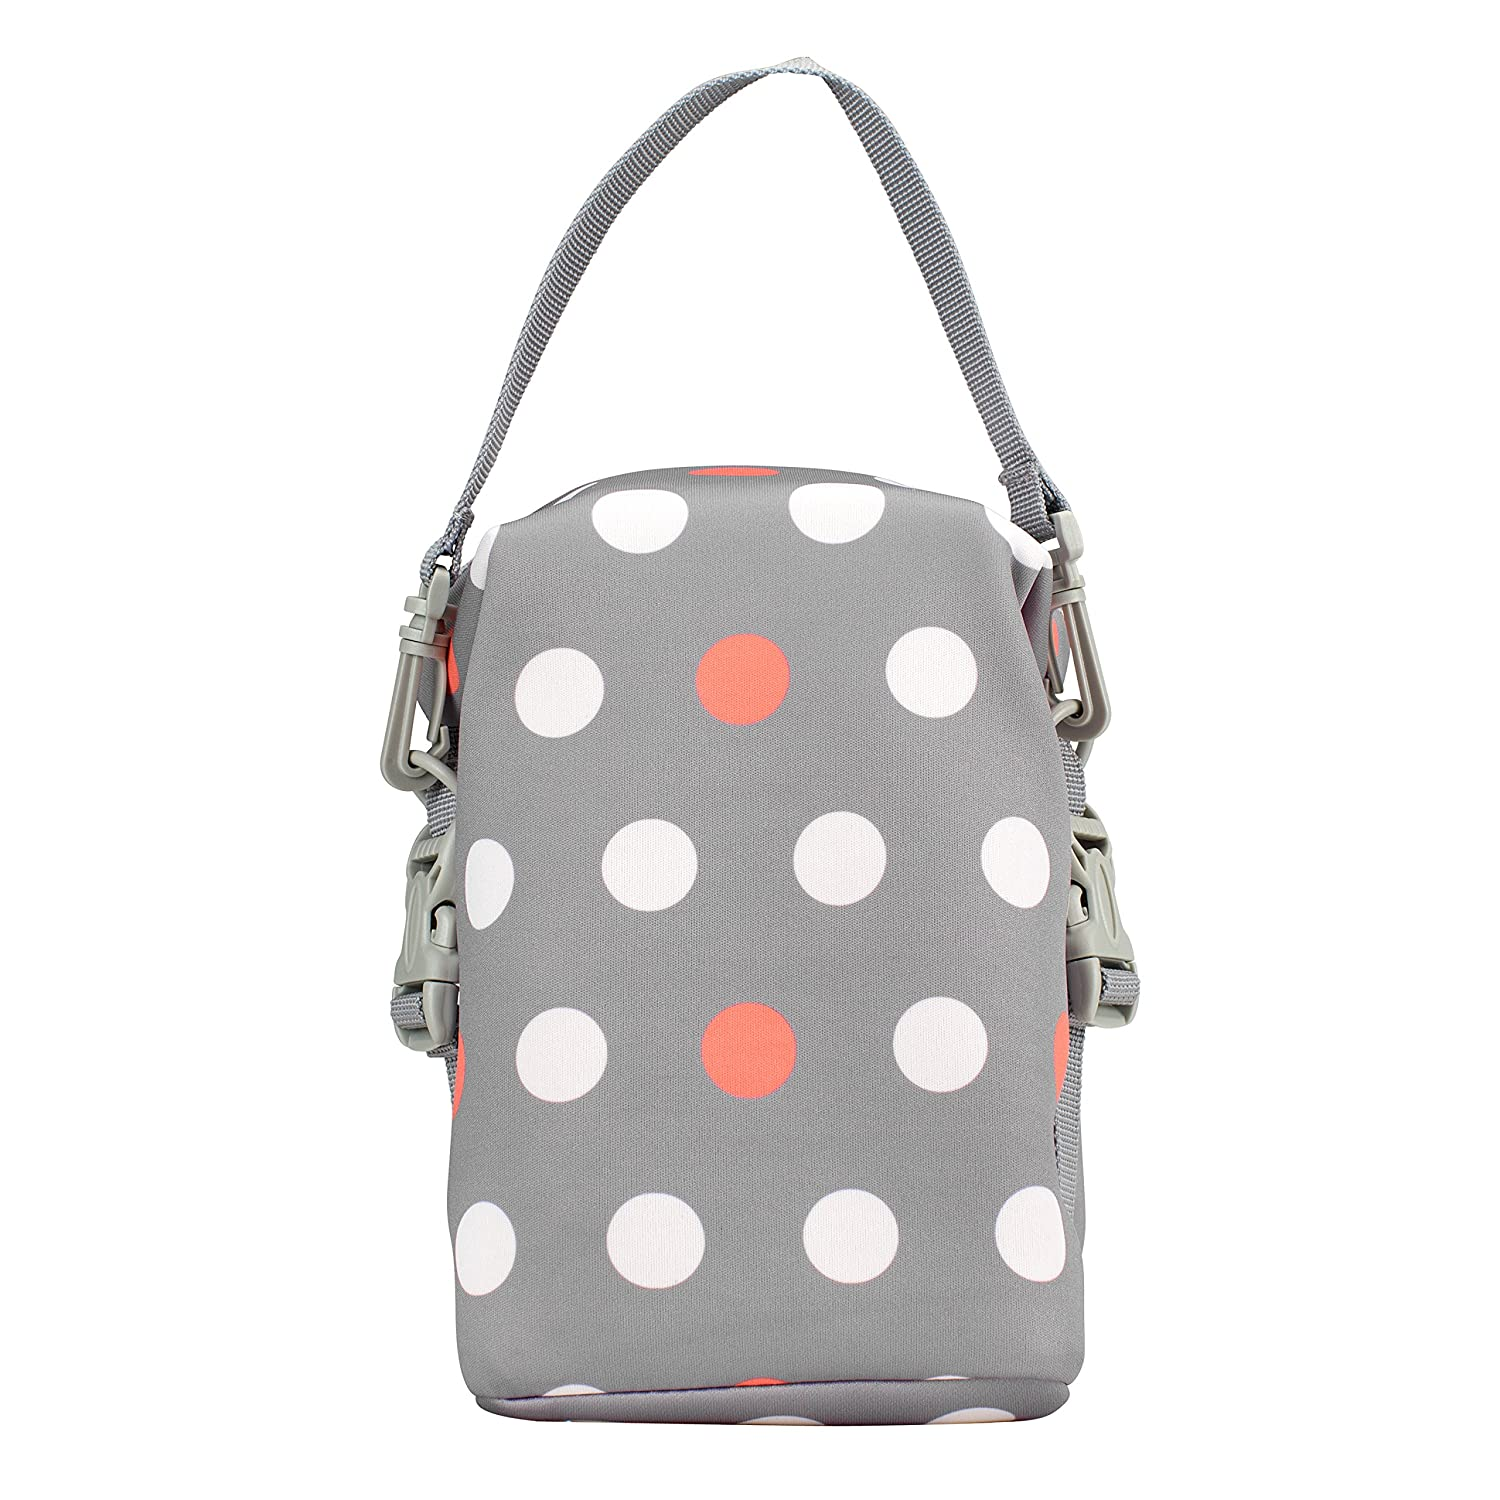 Dr. Brown's Convertible Bottle Tote, Polka Dot Dr. Brown' s AC016-WEB